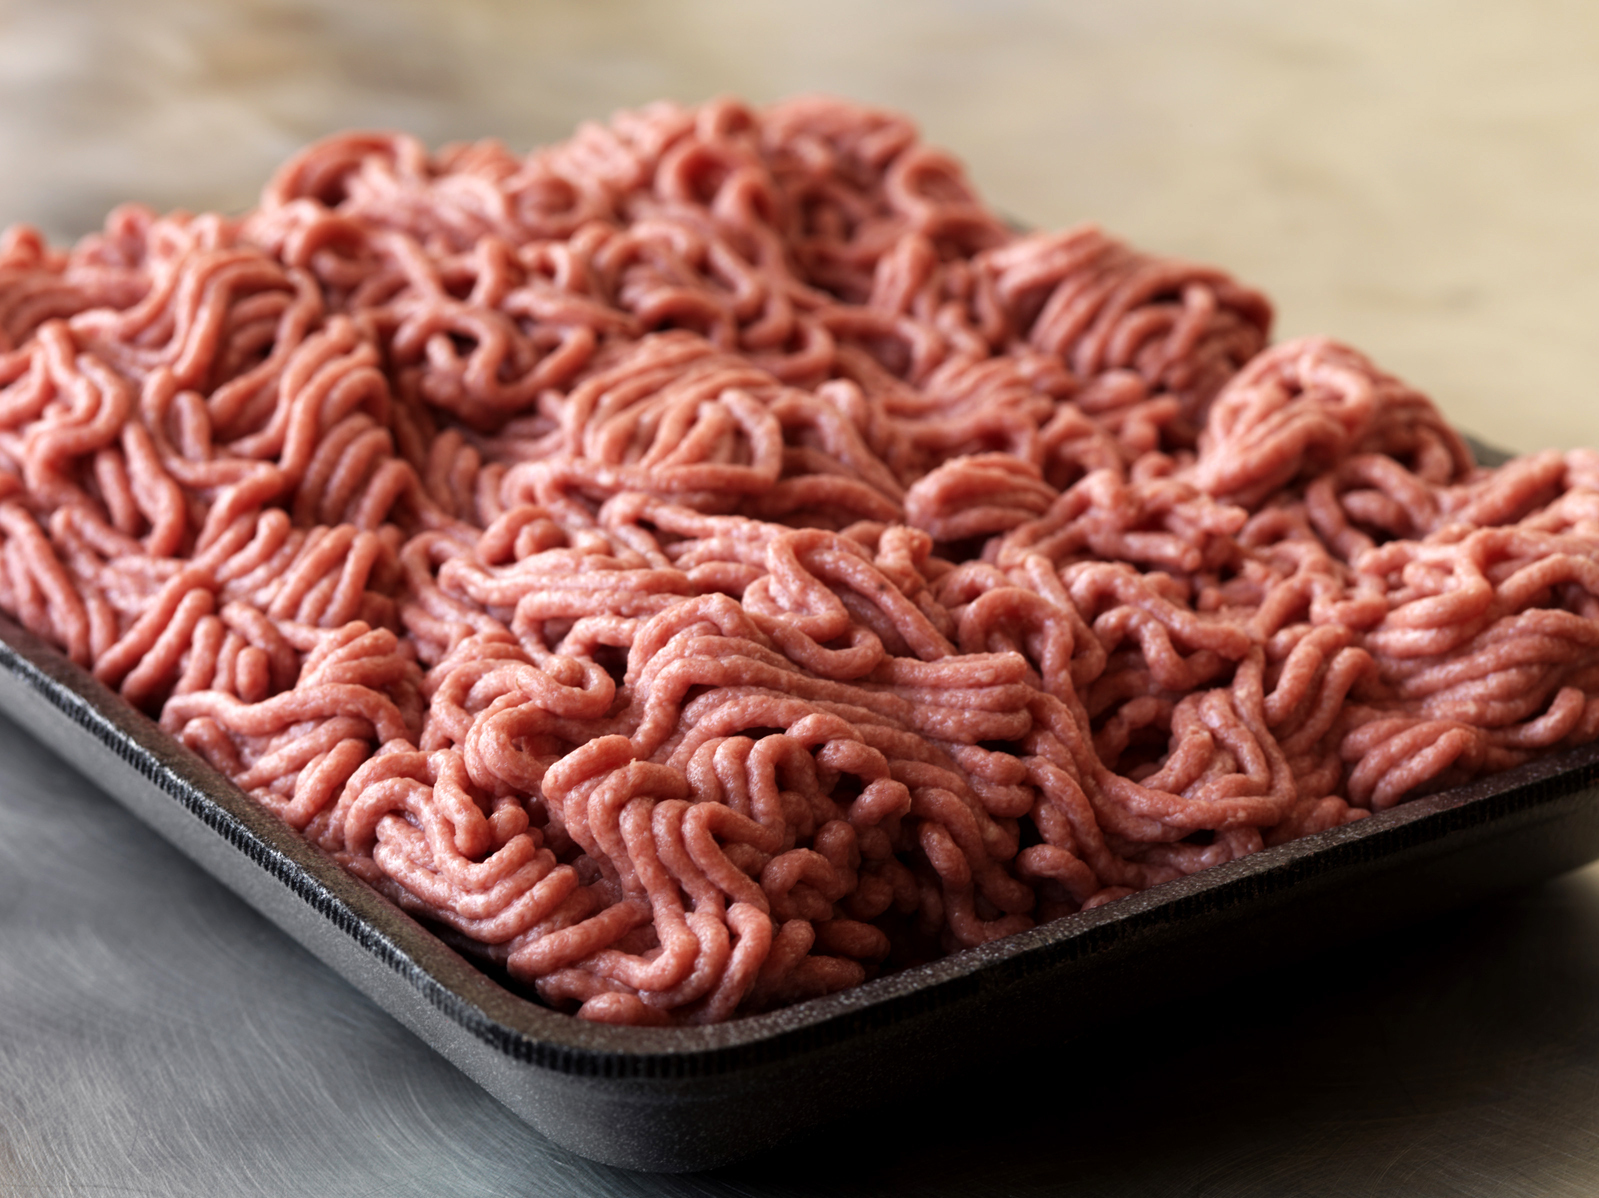 South Dakota-based meat processor Beef Products Inc. shows a sample of its lean, finely textured beef in September 2012. Photo: AP